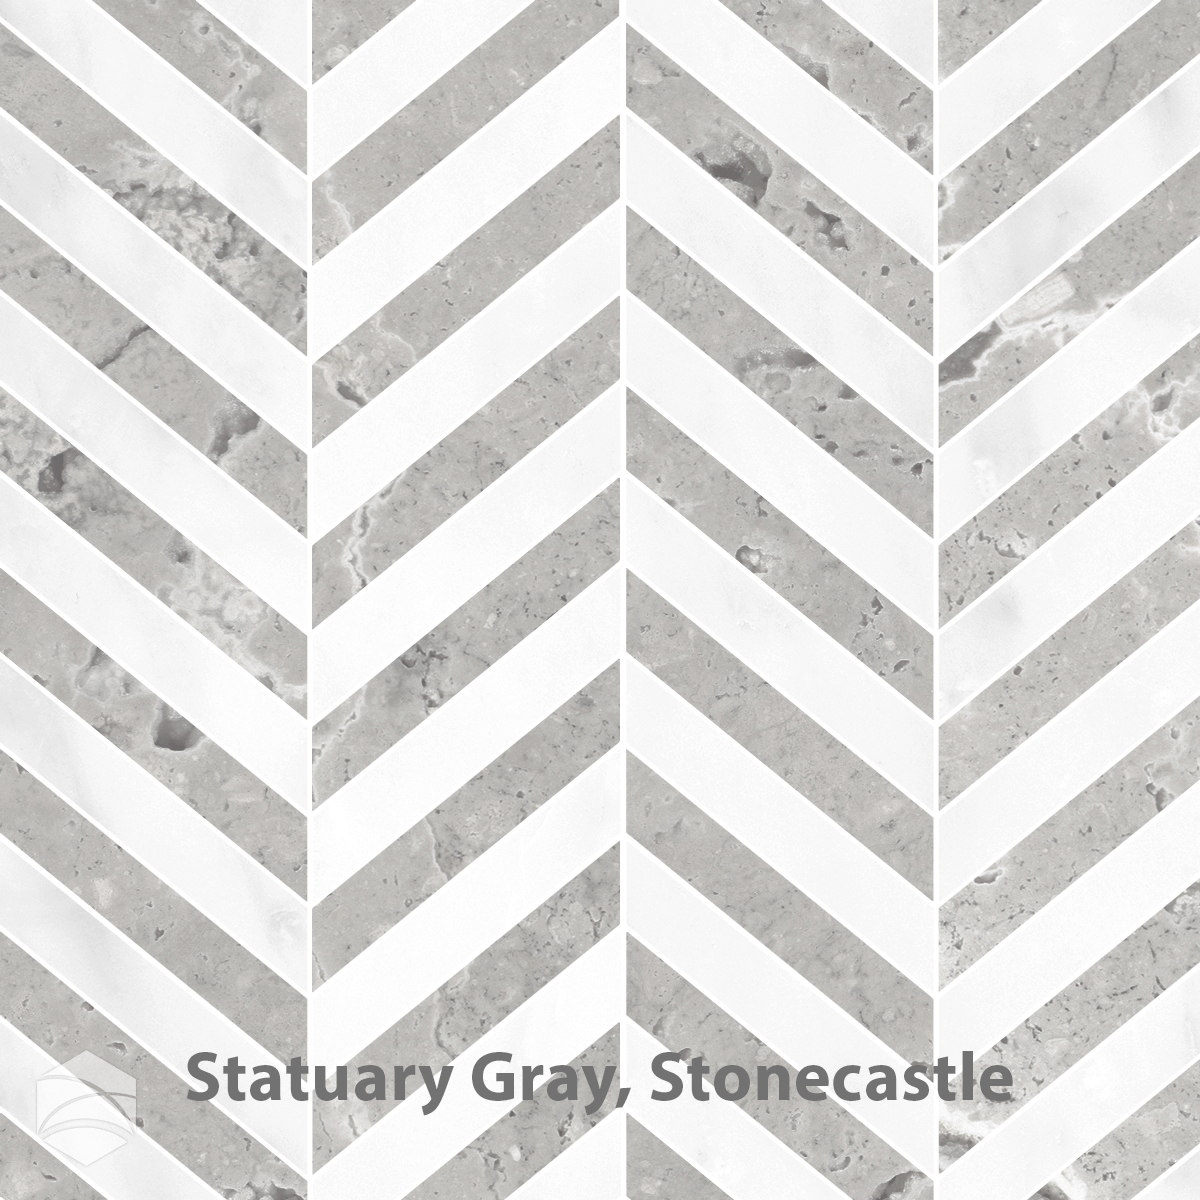 Statuary Gray, Stonecastle_chevron_V2_12x12.jpg